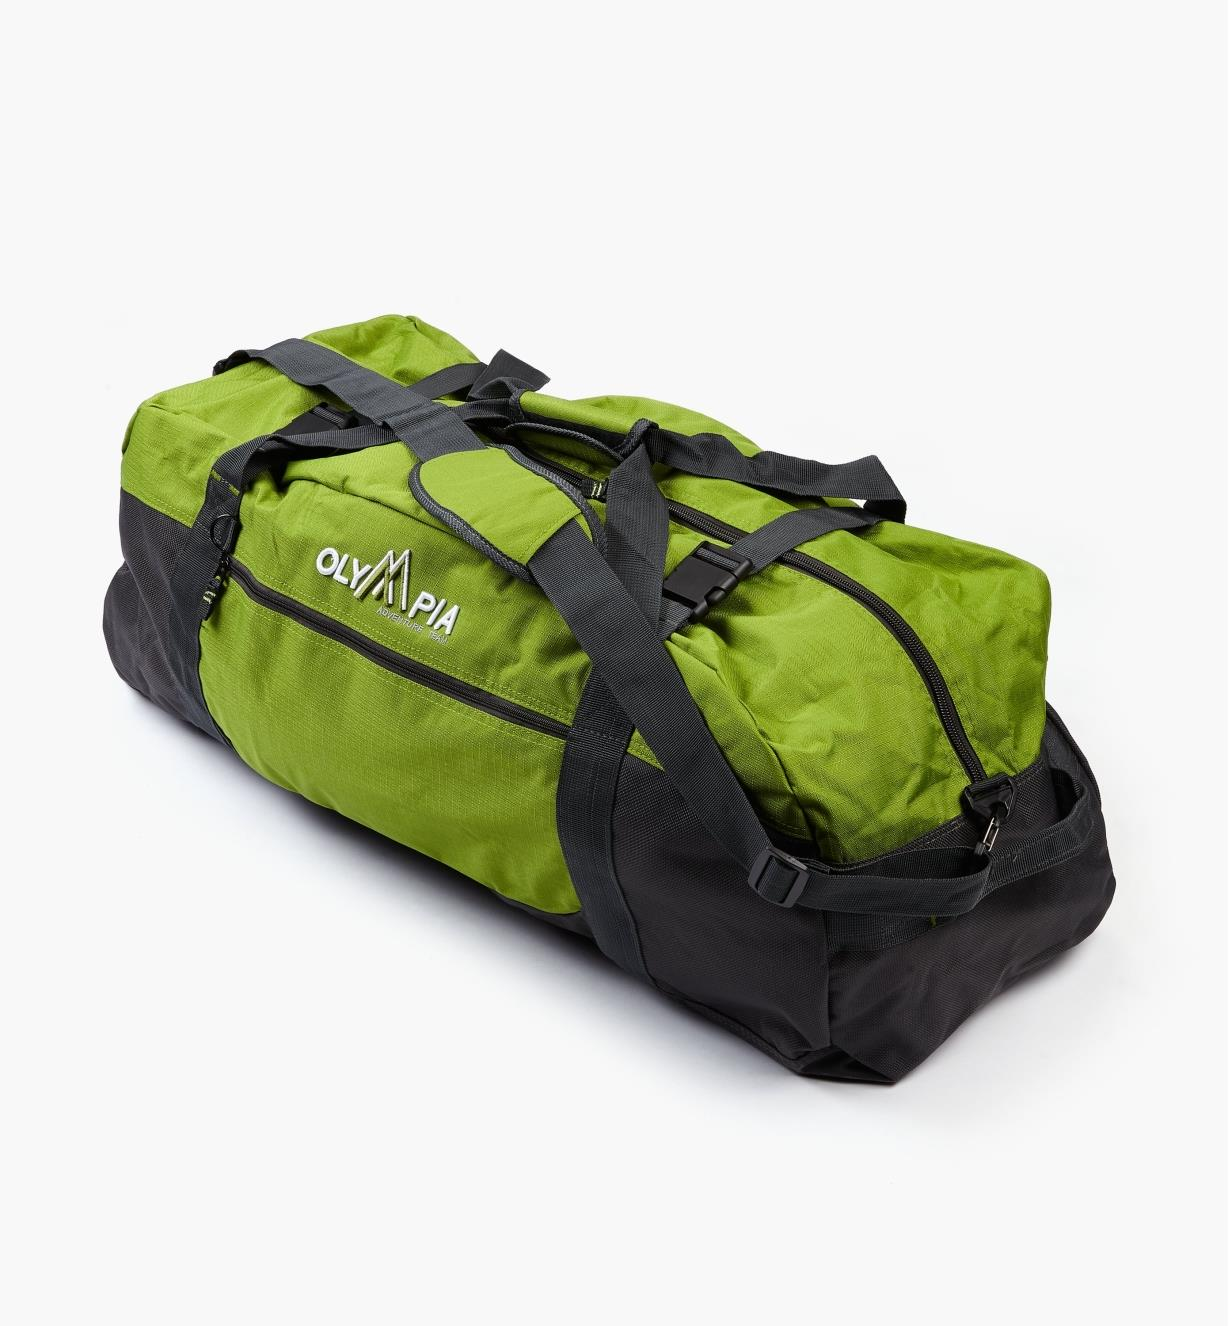 99W8744G - Green Multi-Purpose Duffle Bag